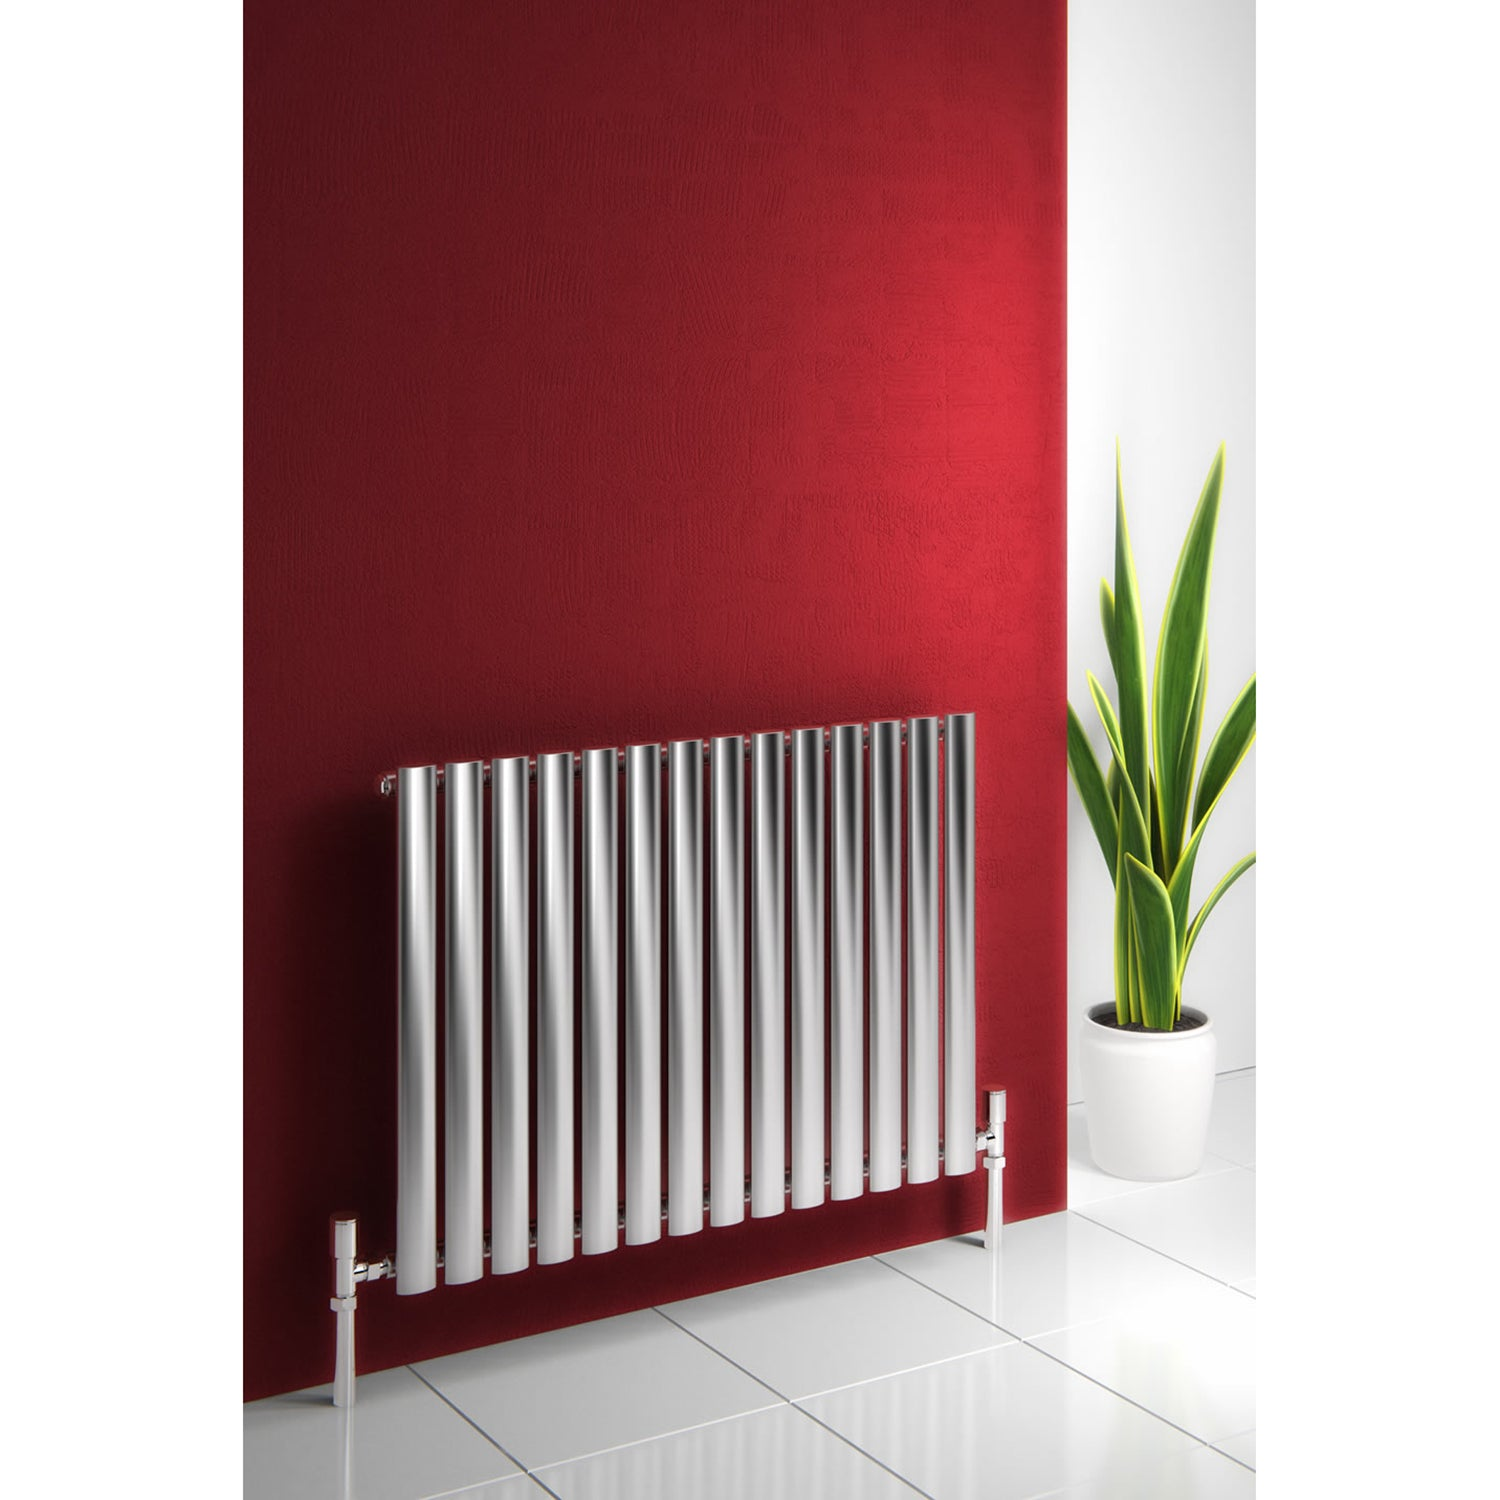 Reina Nerox Single Polished Designer Radiator